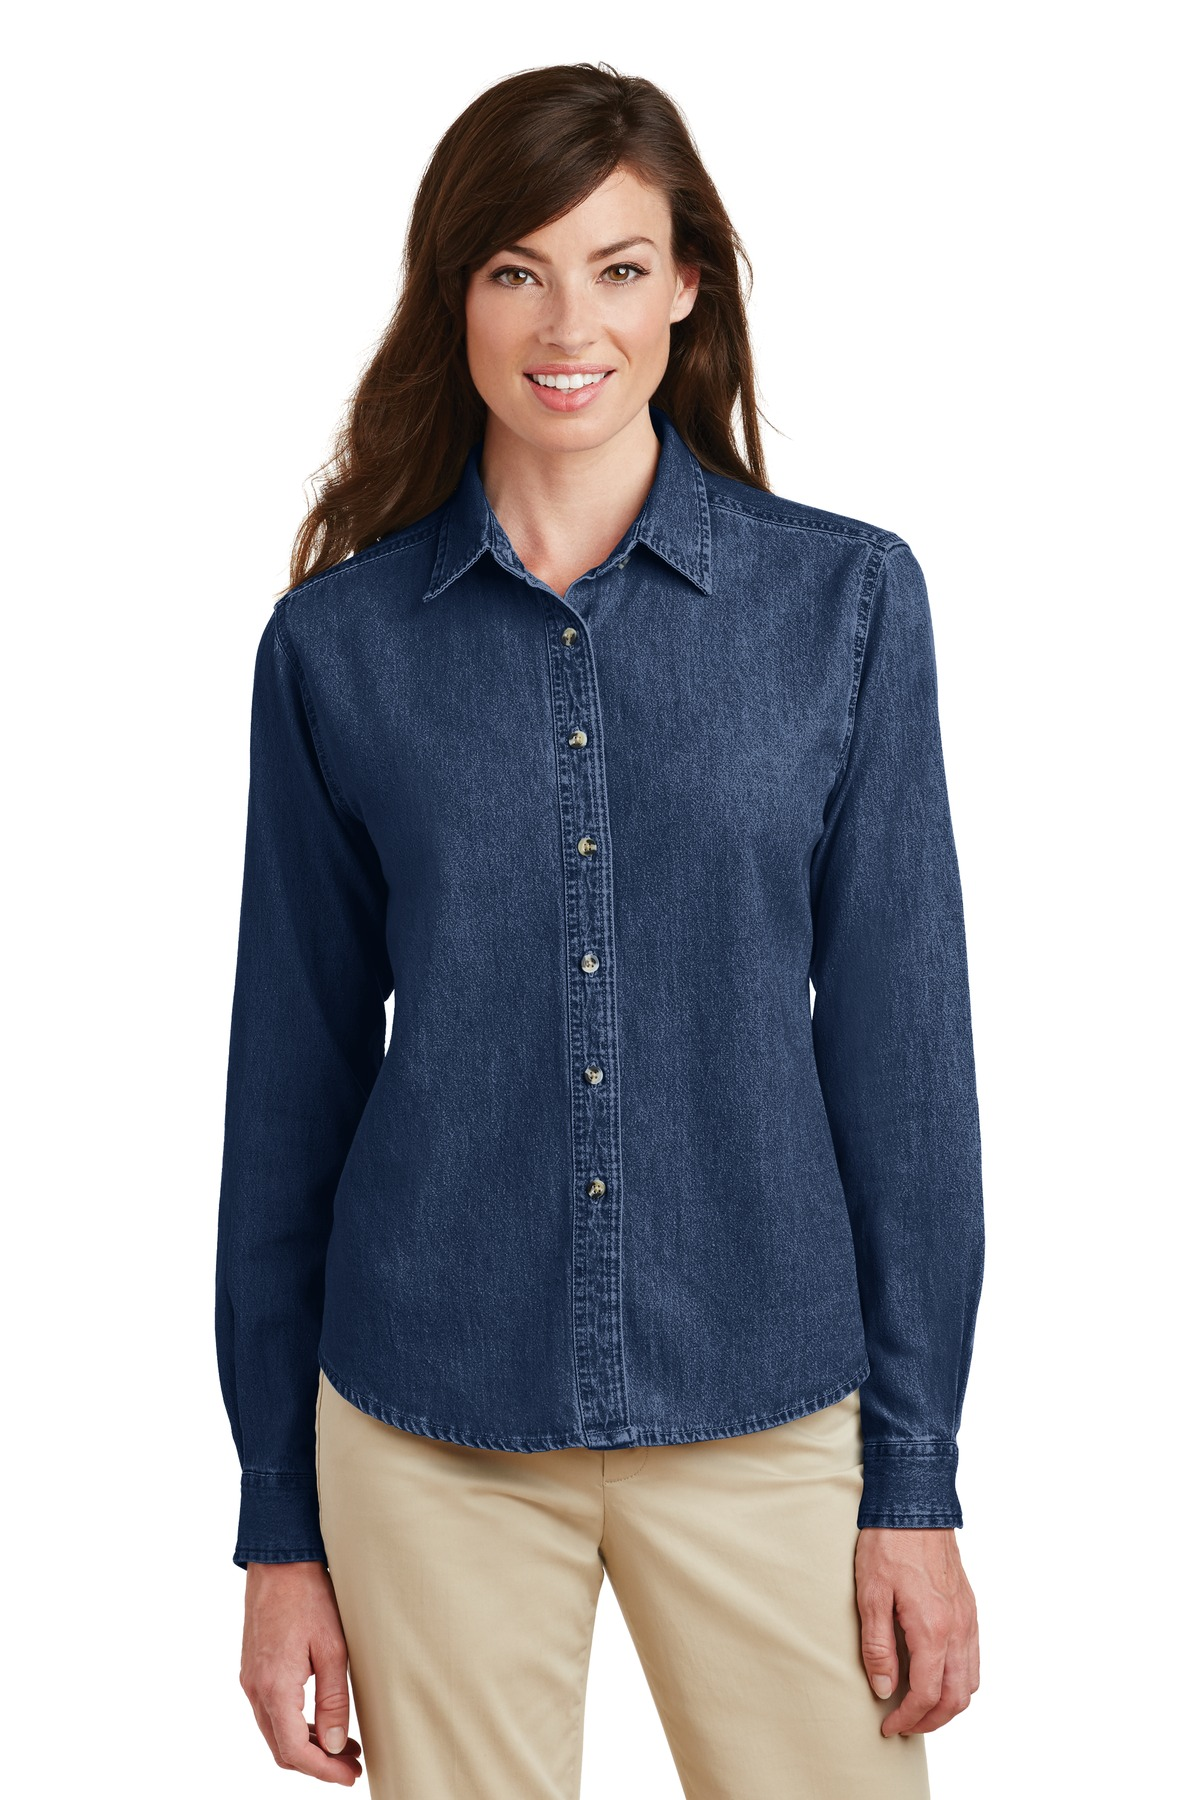 Port and Company - Ladies Long Sleeve Value Denim Shirt. LSP10